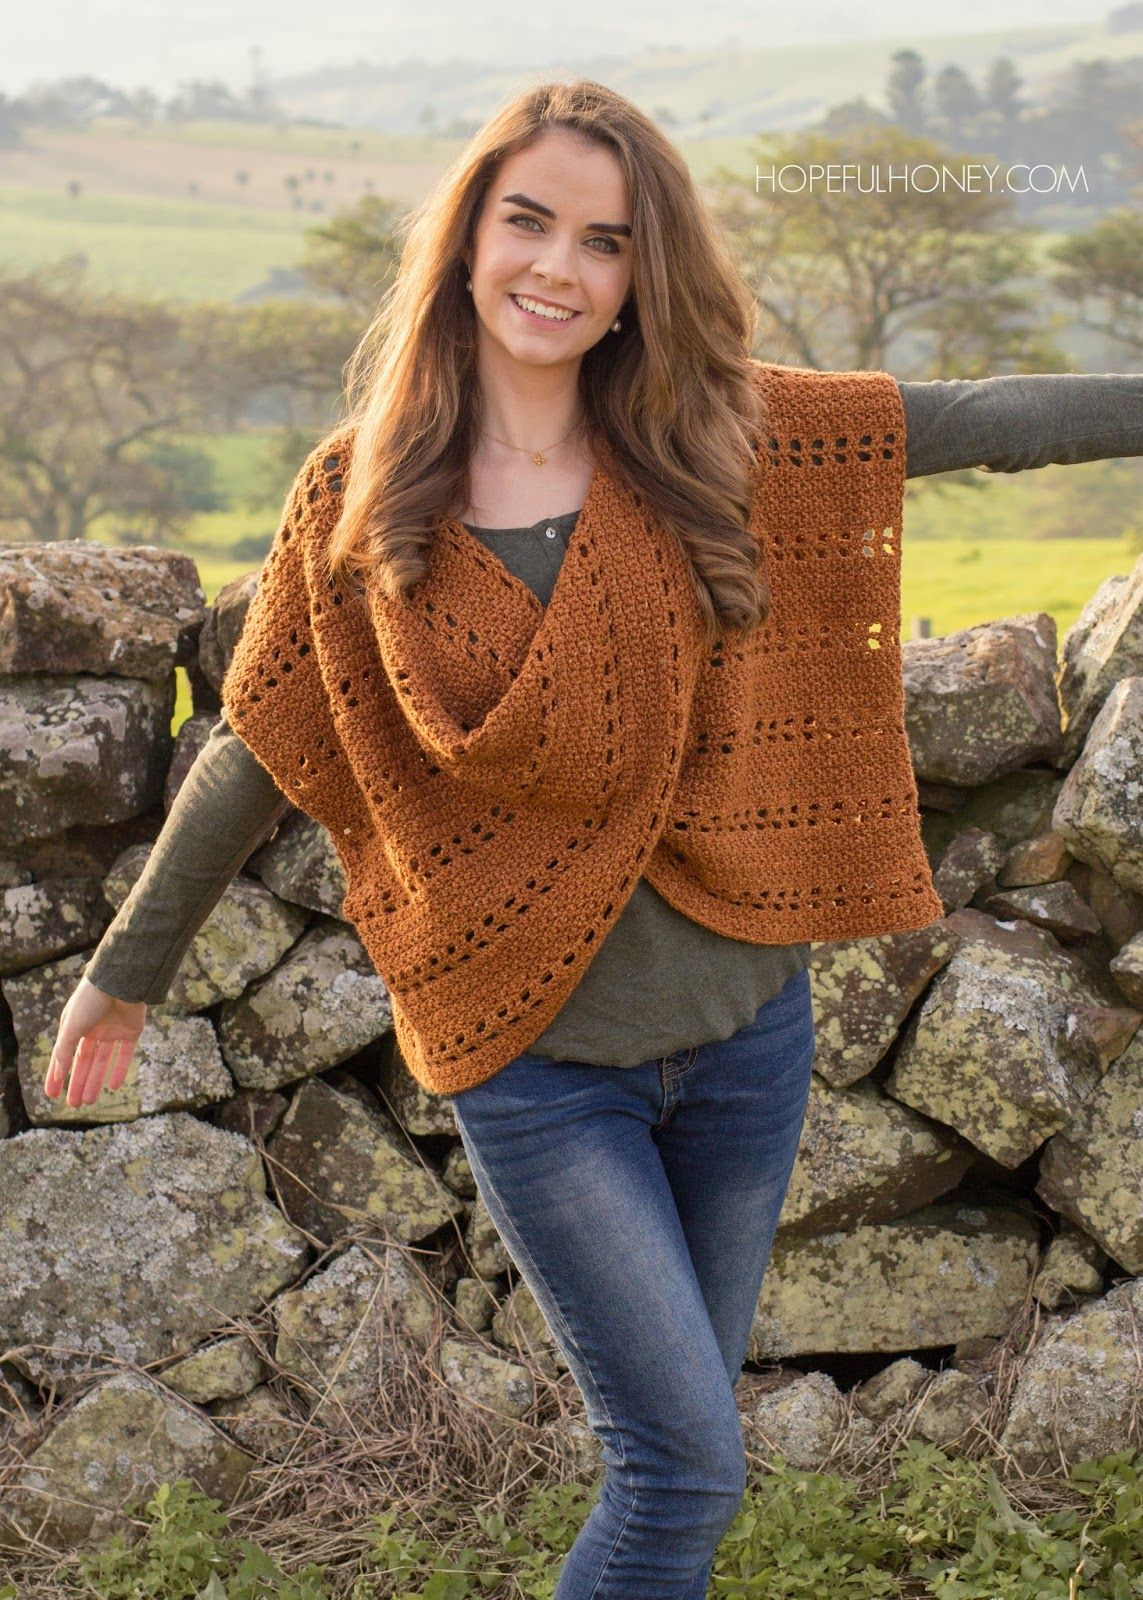 Cinnamon roll pullover sweater crochet pattern giveaway cinnamon roll pullover sweater crochet pattern giveaway bankloansurffo Images